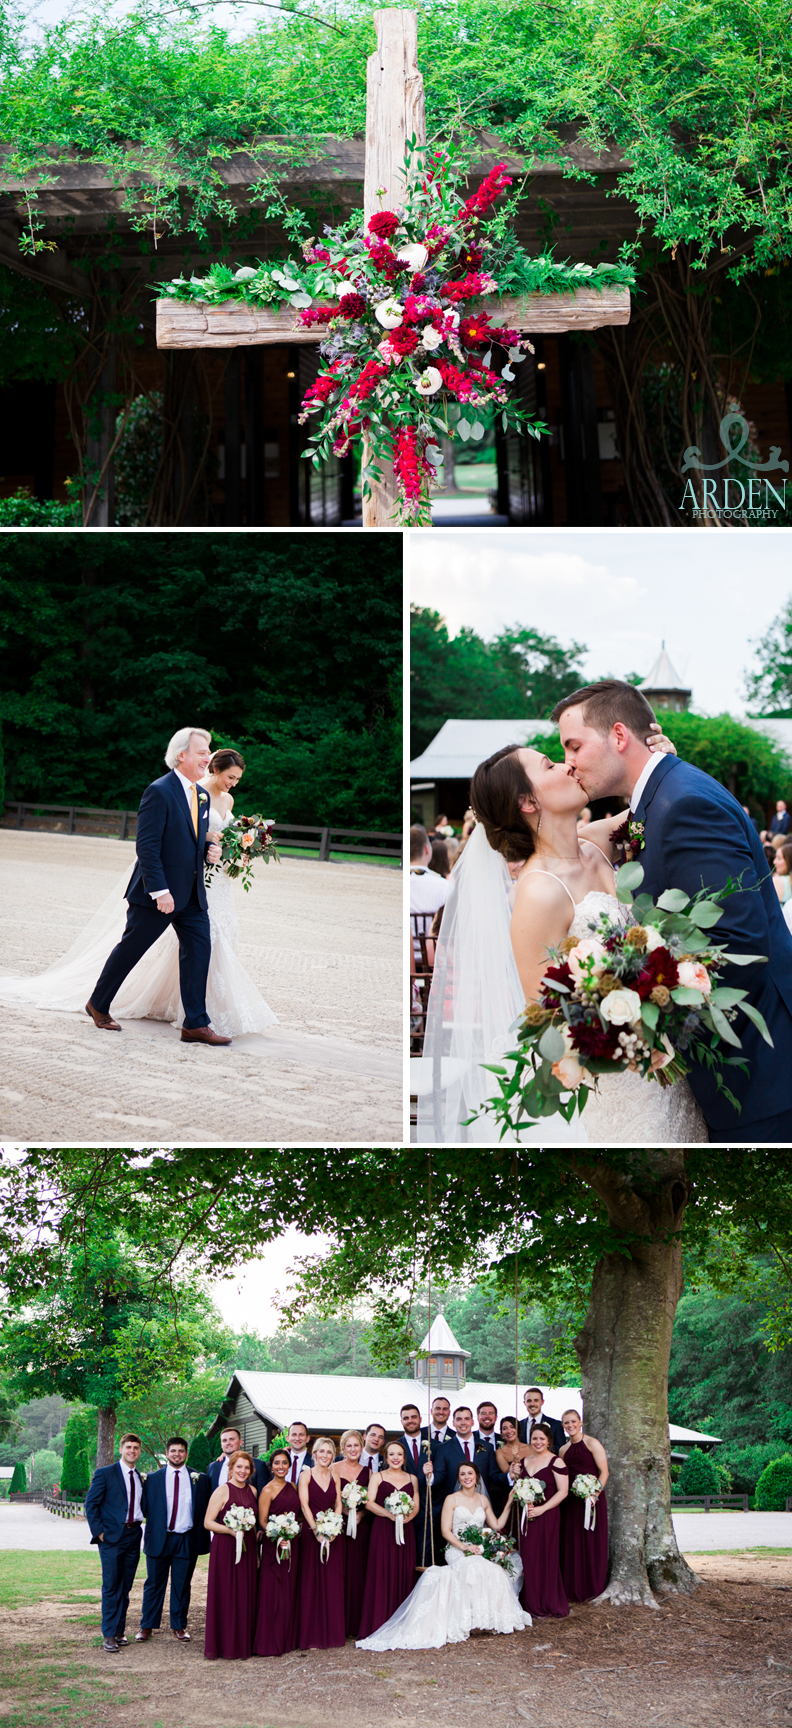 Before, during, and after the ceremony. What's your favorite ceremony moment?